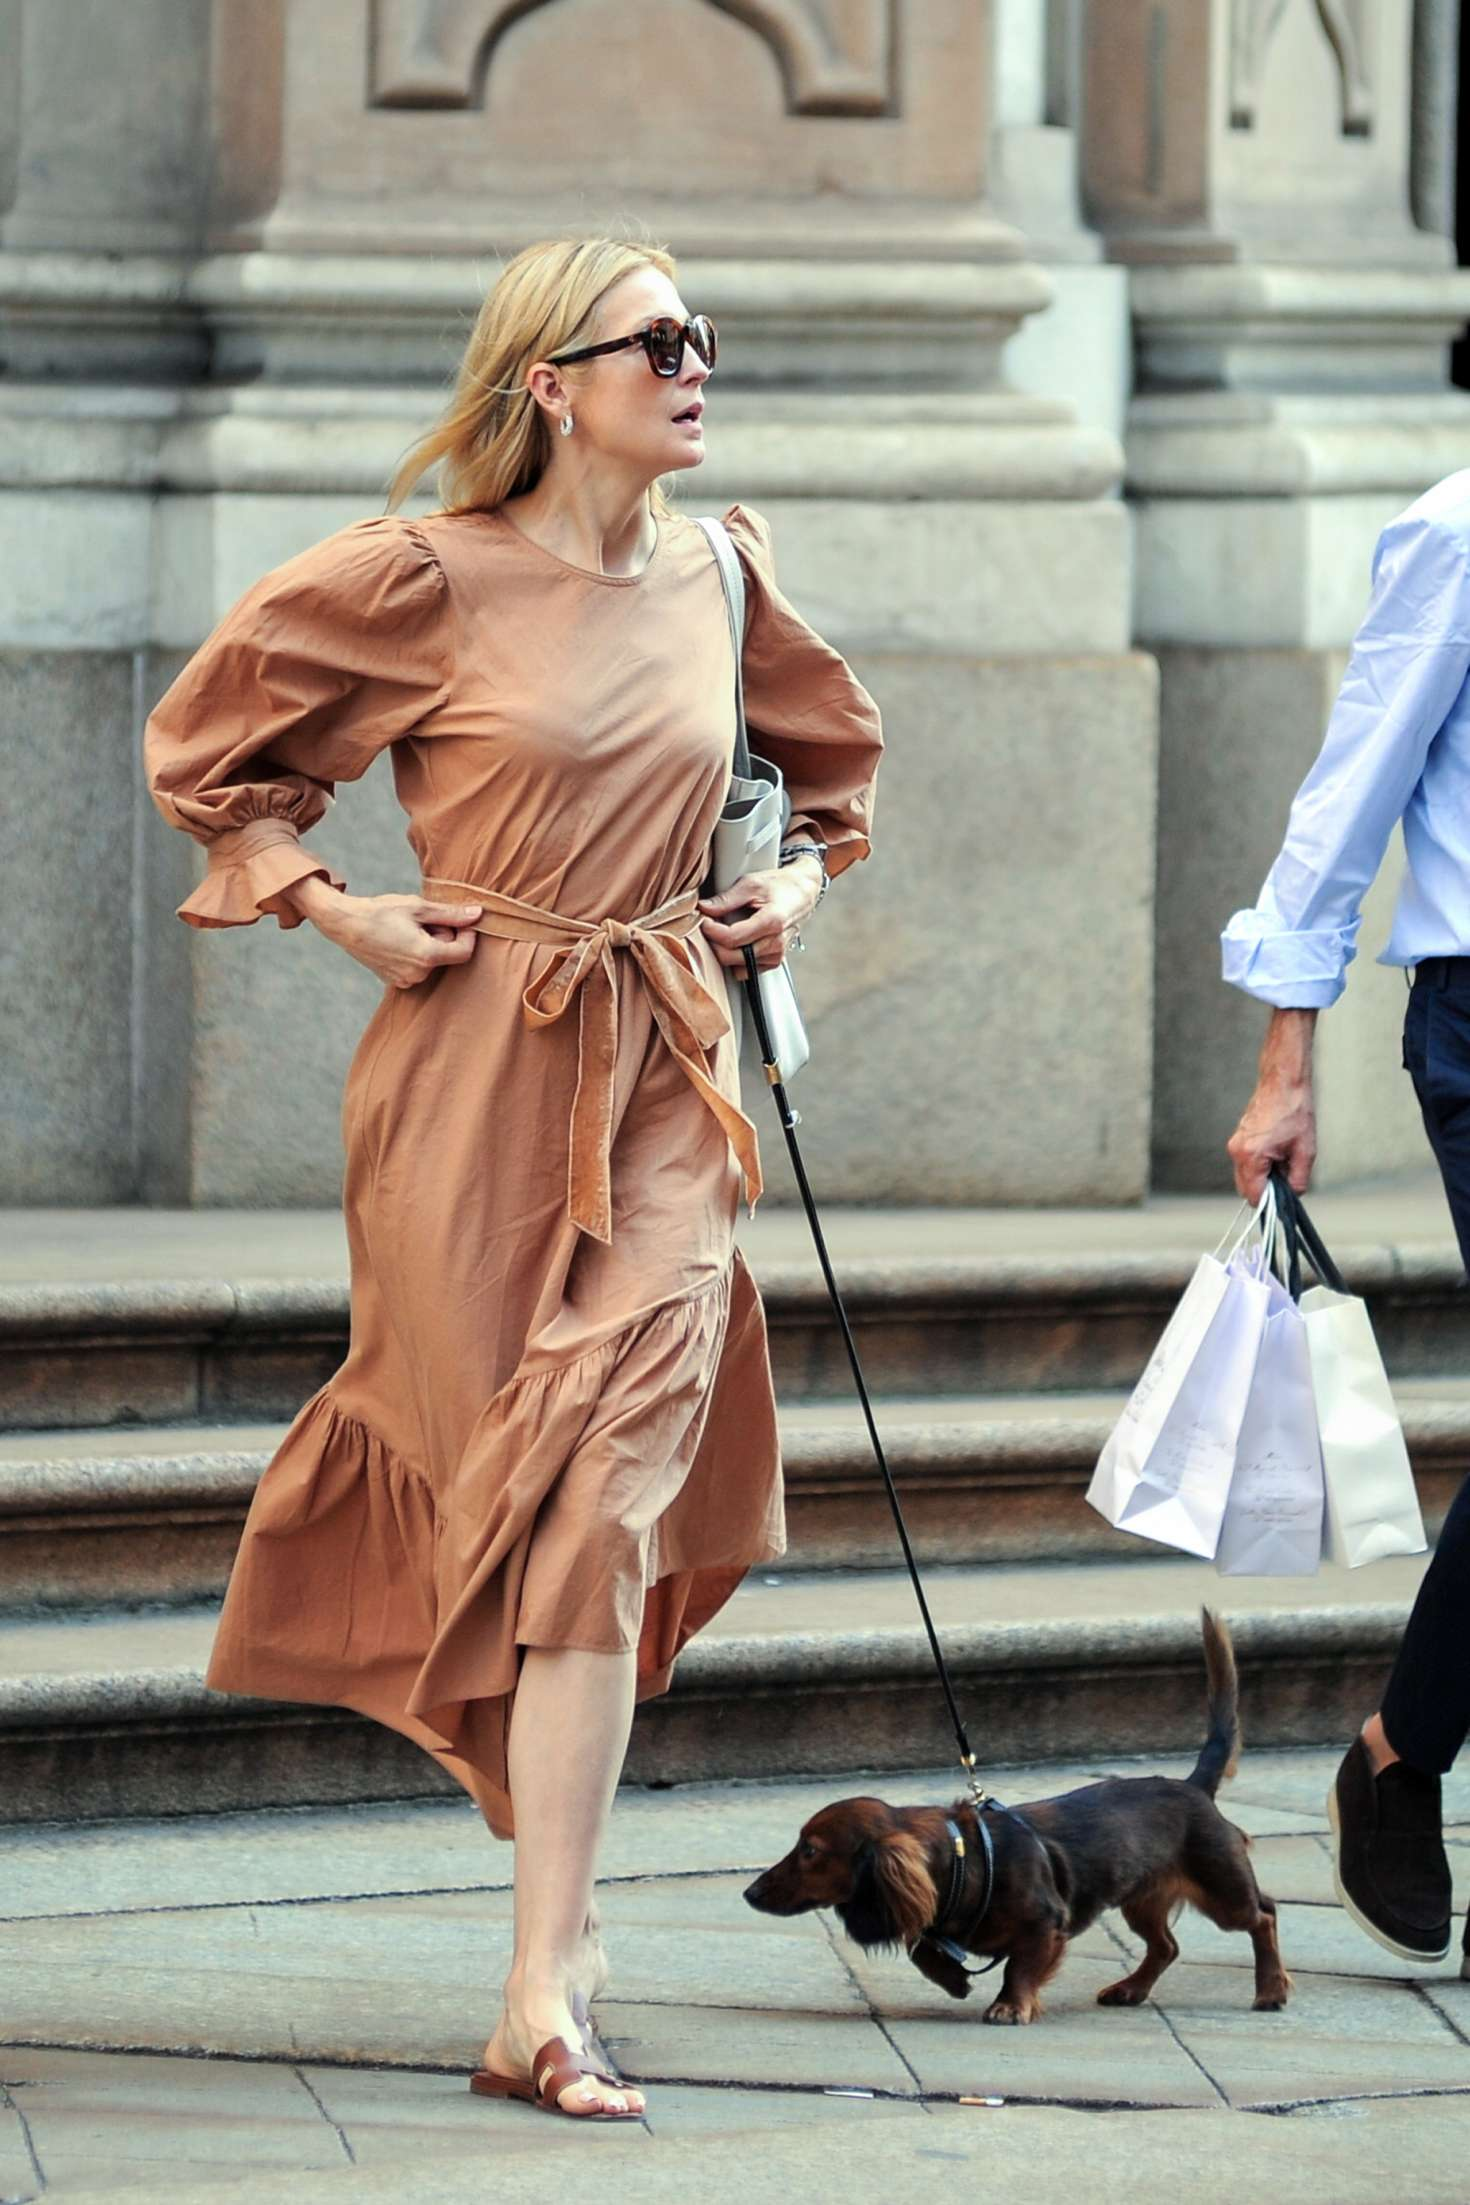 Discussion on this topic: Lindsay Bushman, kelly-rutherford/